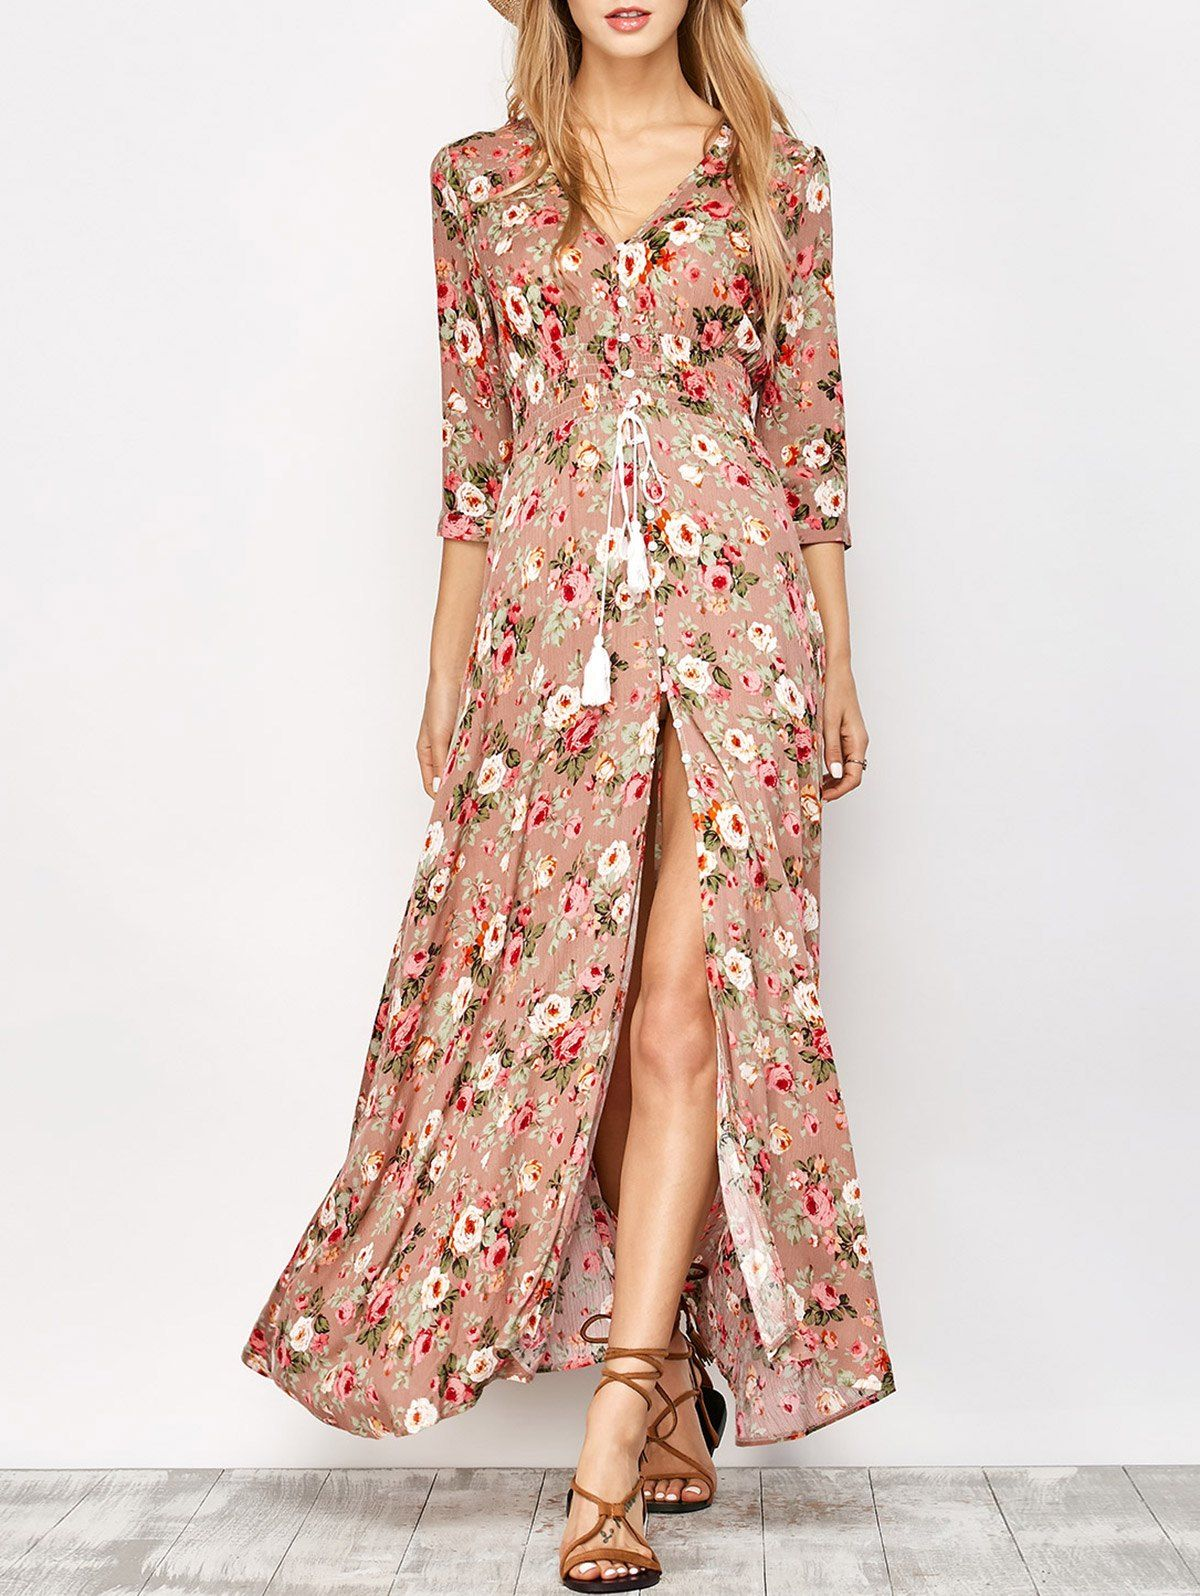 Floral Thigh High Split Maxi Dress | Floral maxi, Floral and ...